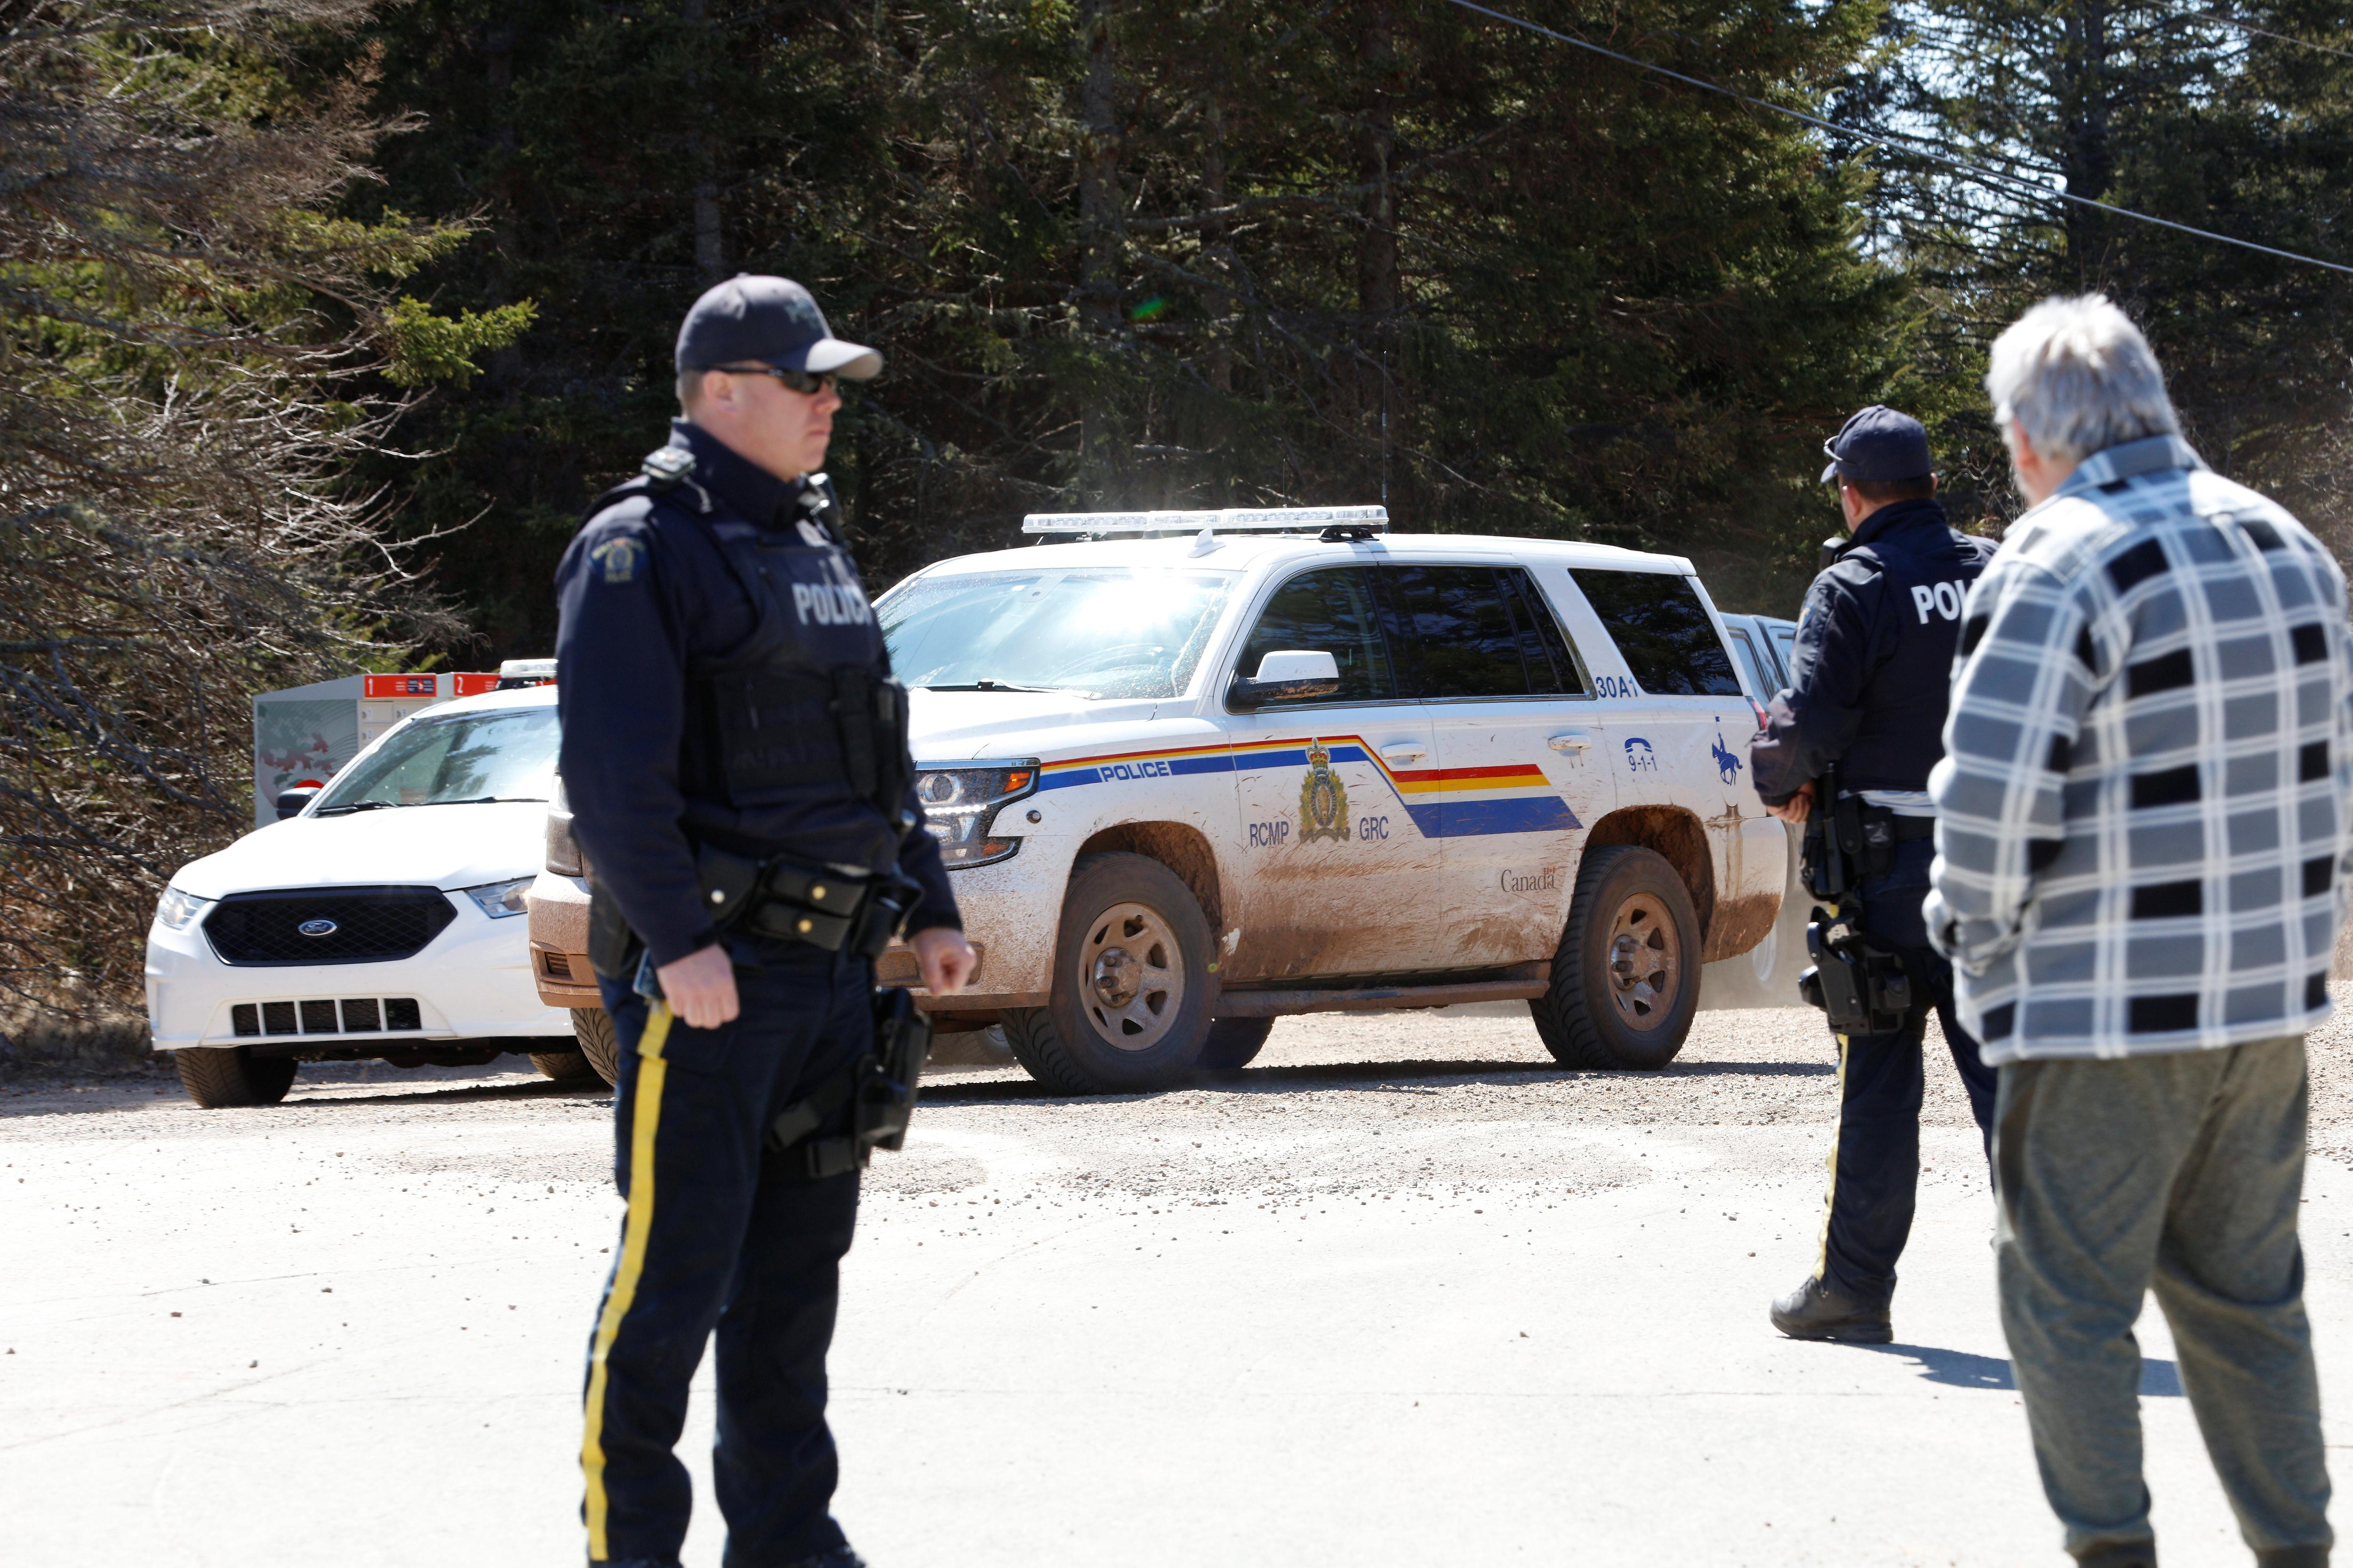 A Royal Canadian Mounted Police (RCMP) SUV pulls up to the end of Portapique Beach Road while an officer speaks with a man after the police finished their search for Gabriel Wortman, who they describe as a shooter of multiple victims, in Portapique, Nova Scotia, Canada April 19, 2020. Photo: Reuters